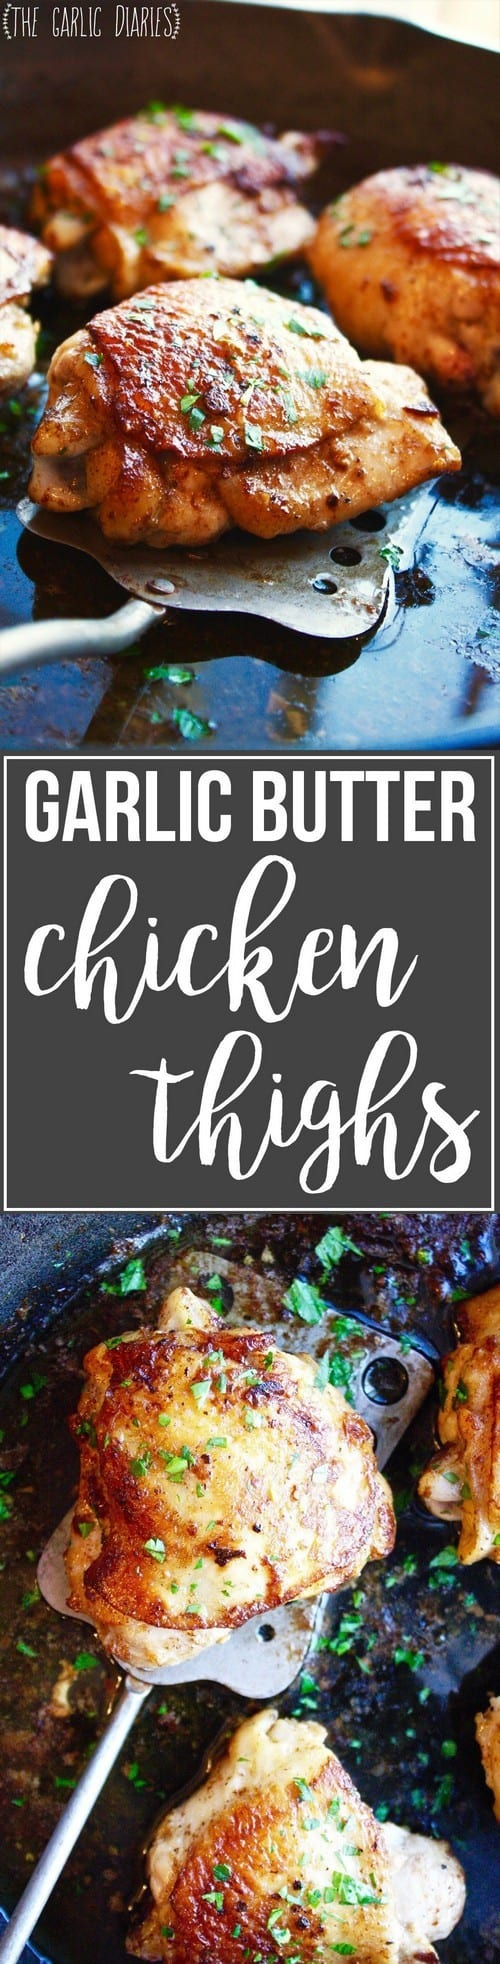 Keto Garlic Butter Chicken Thighs